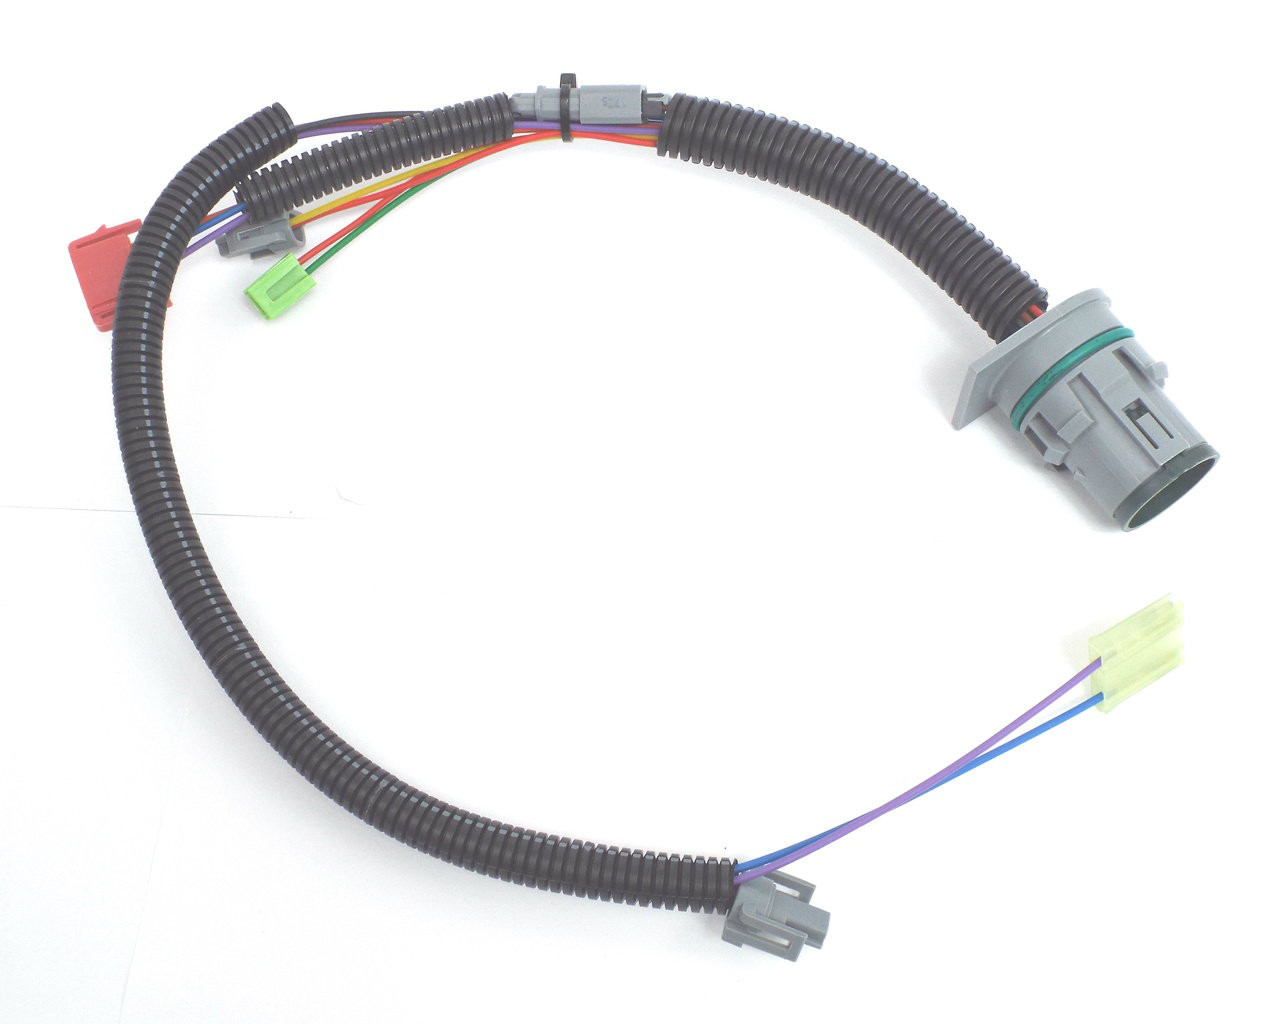 new 4l80e transmission hd internal valve body wiring harness 1991 2003 rh  globaltransmissionparts com 1995 4L80E Transmission Diagram Chevy 4L80E  Automatic ...